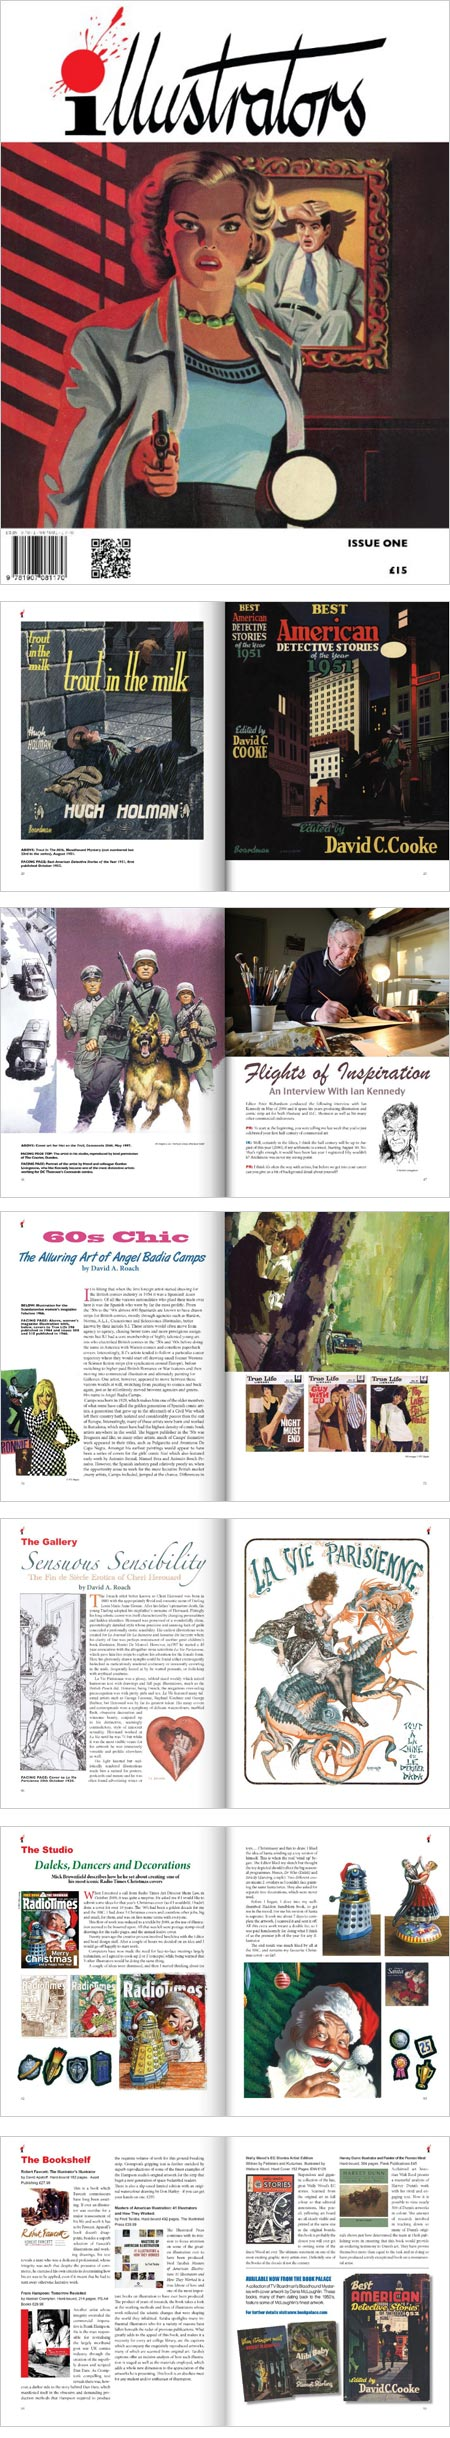 illustrators magazine: Denis McLoughlin, Ian Kennedy, Angel Badia Camps, Cheri Herouard, Mick Brownfield